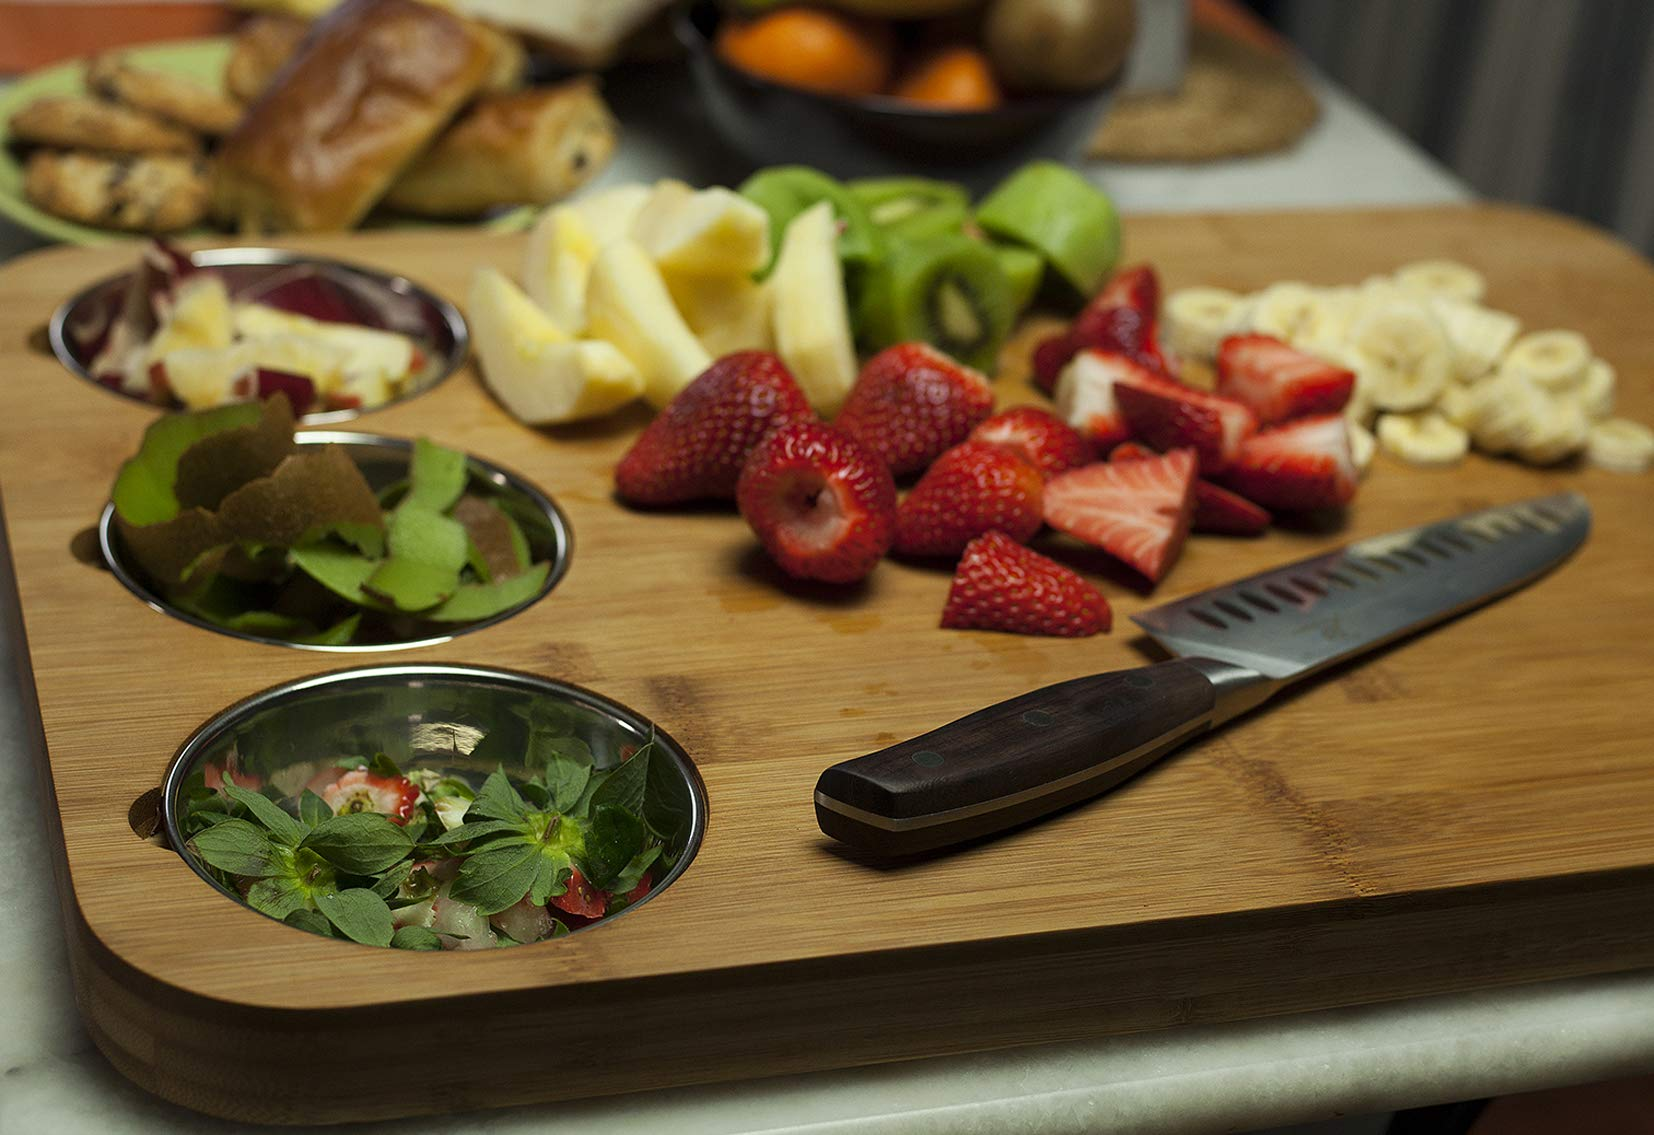 VERSACHOP Trio, Extra Large 22'' X 16'' Kitchen Cutting Board and Butcher Block made from Totally Natural Organic Moso Bamboo with Three Stainless Steel Bowls by VersaChop (Image #5)